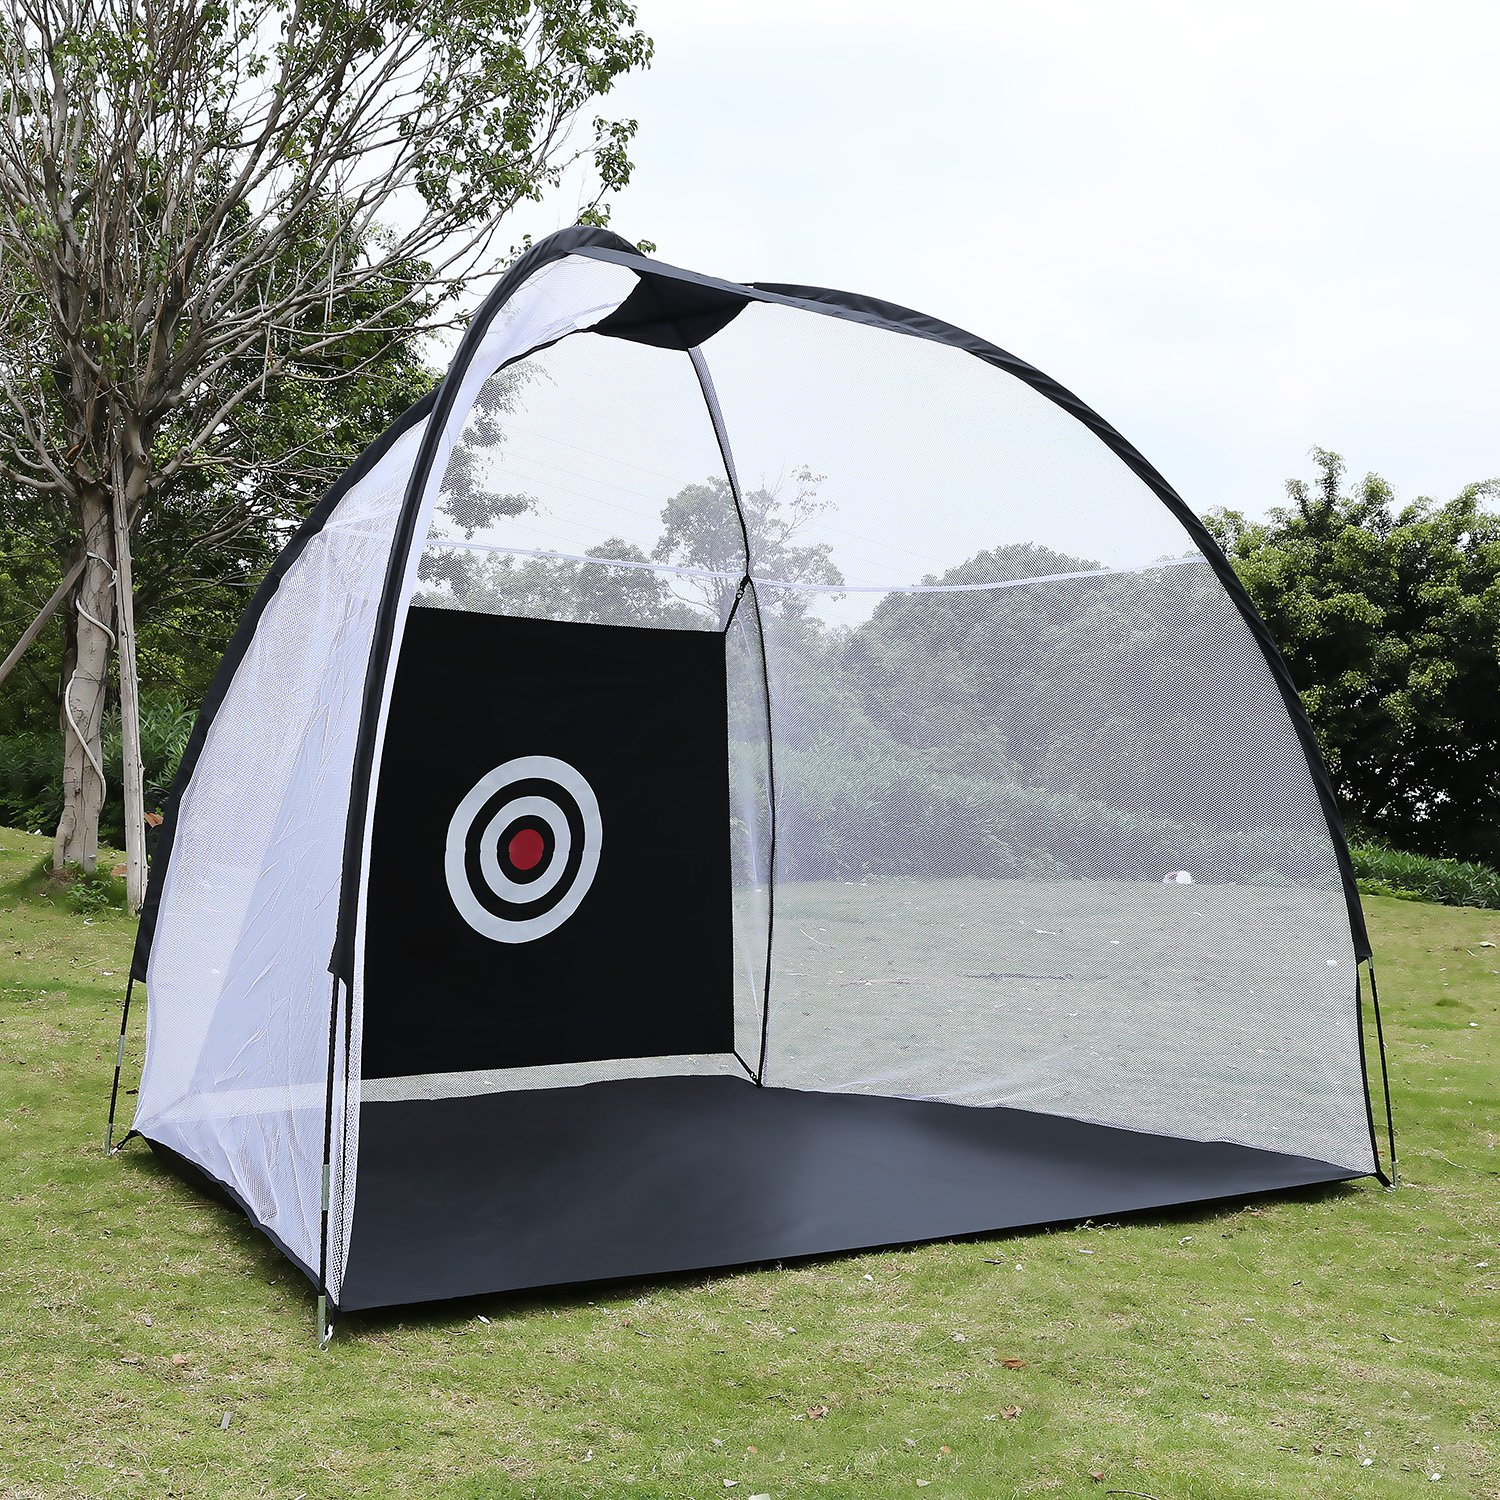 Etuoji Portable Golf Net Ball Hitting with Chipping Target and Carry Bag Large Size by Etuoji (Image #3)